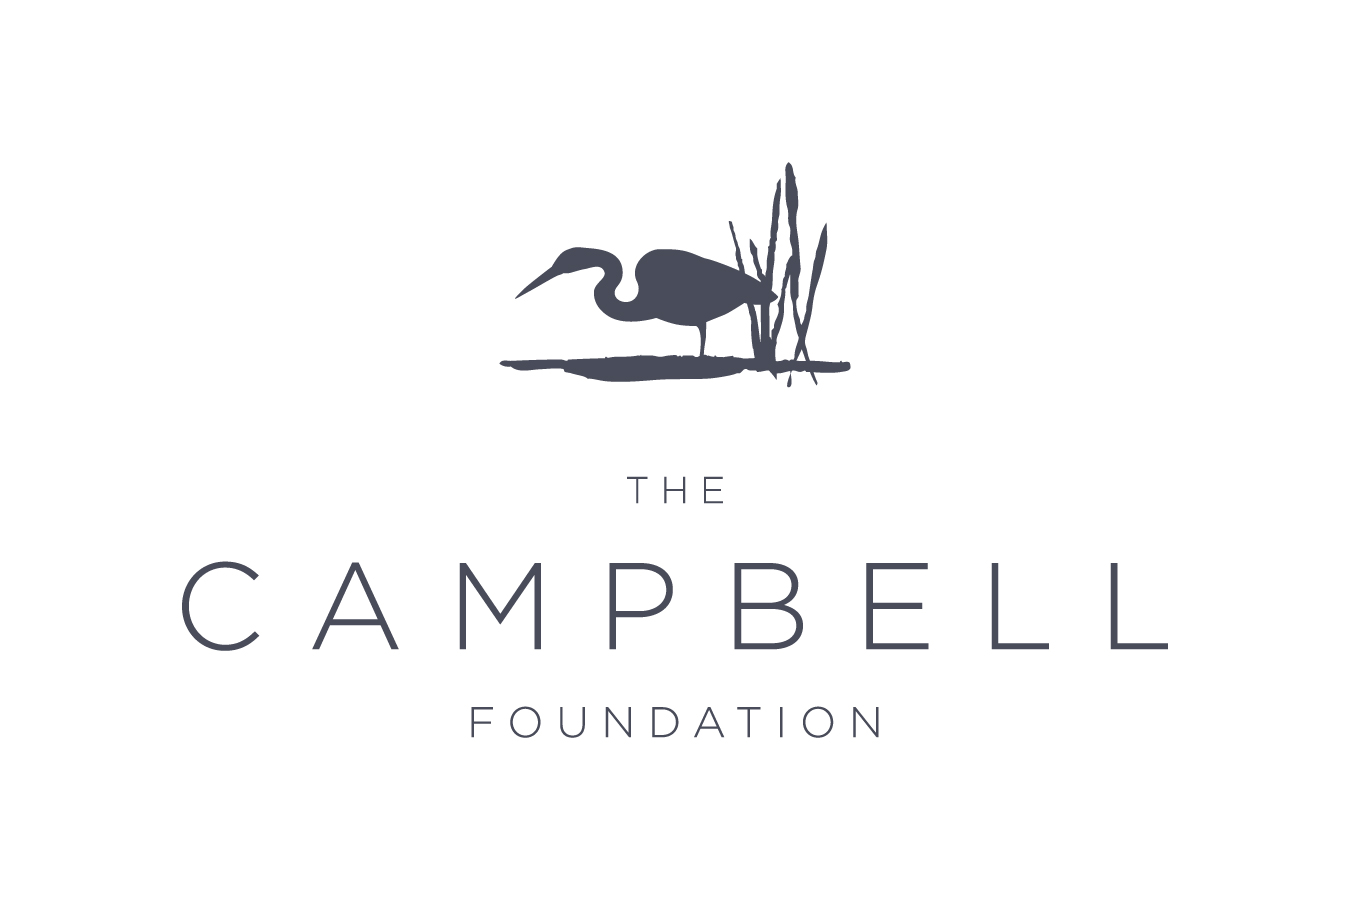 CampbellFoundation_MainLogo_Blue.jpg